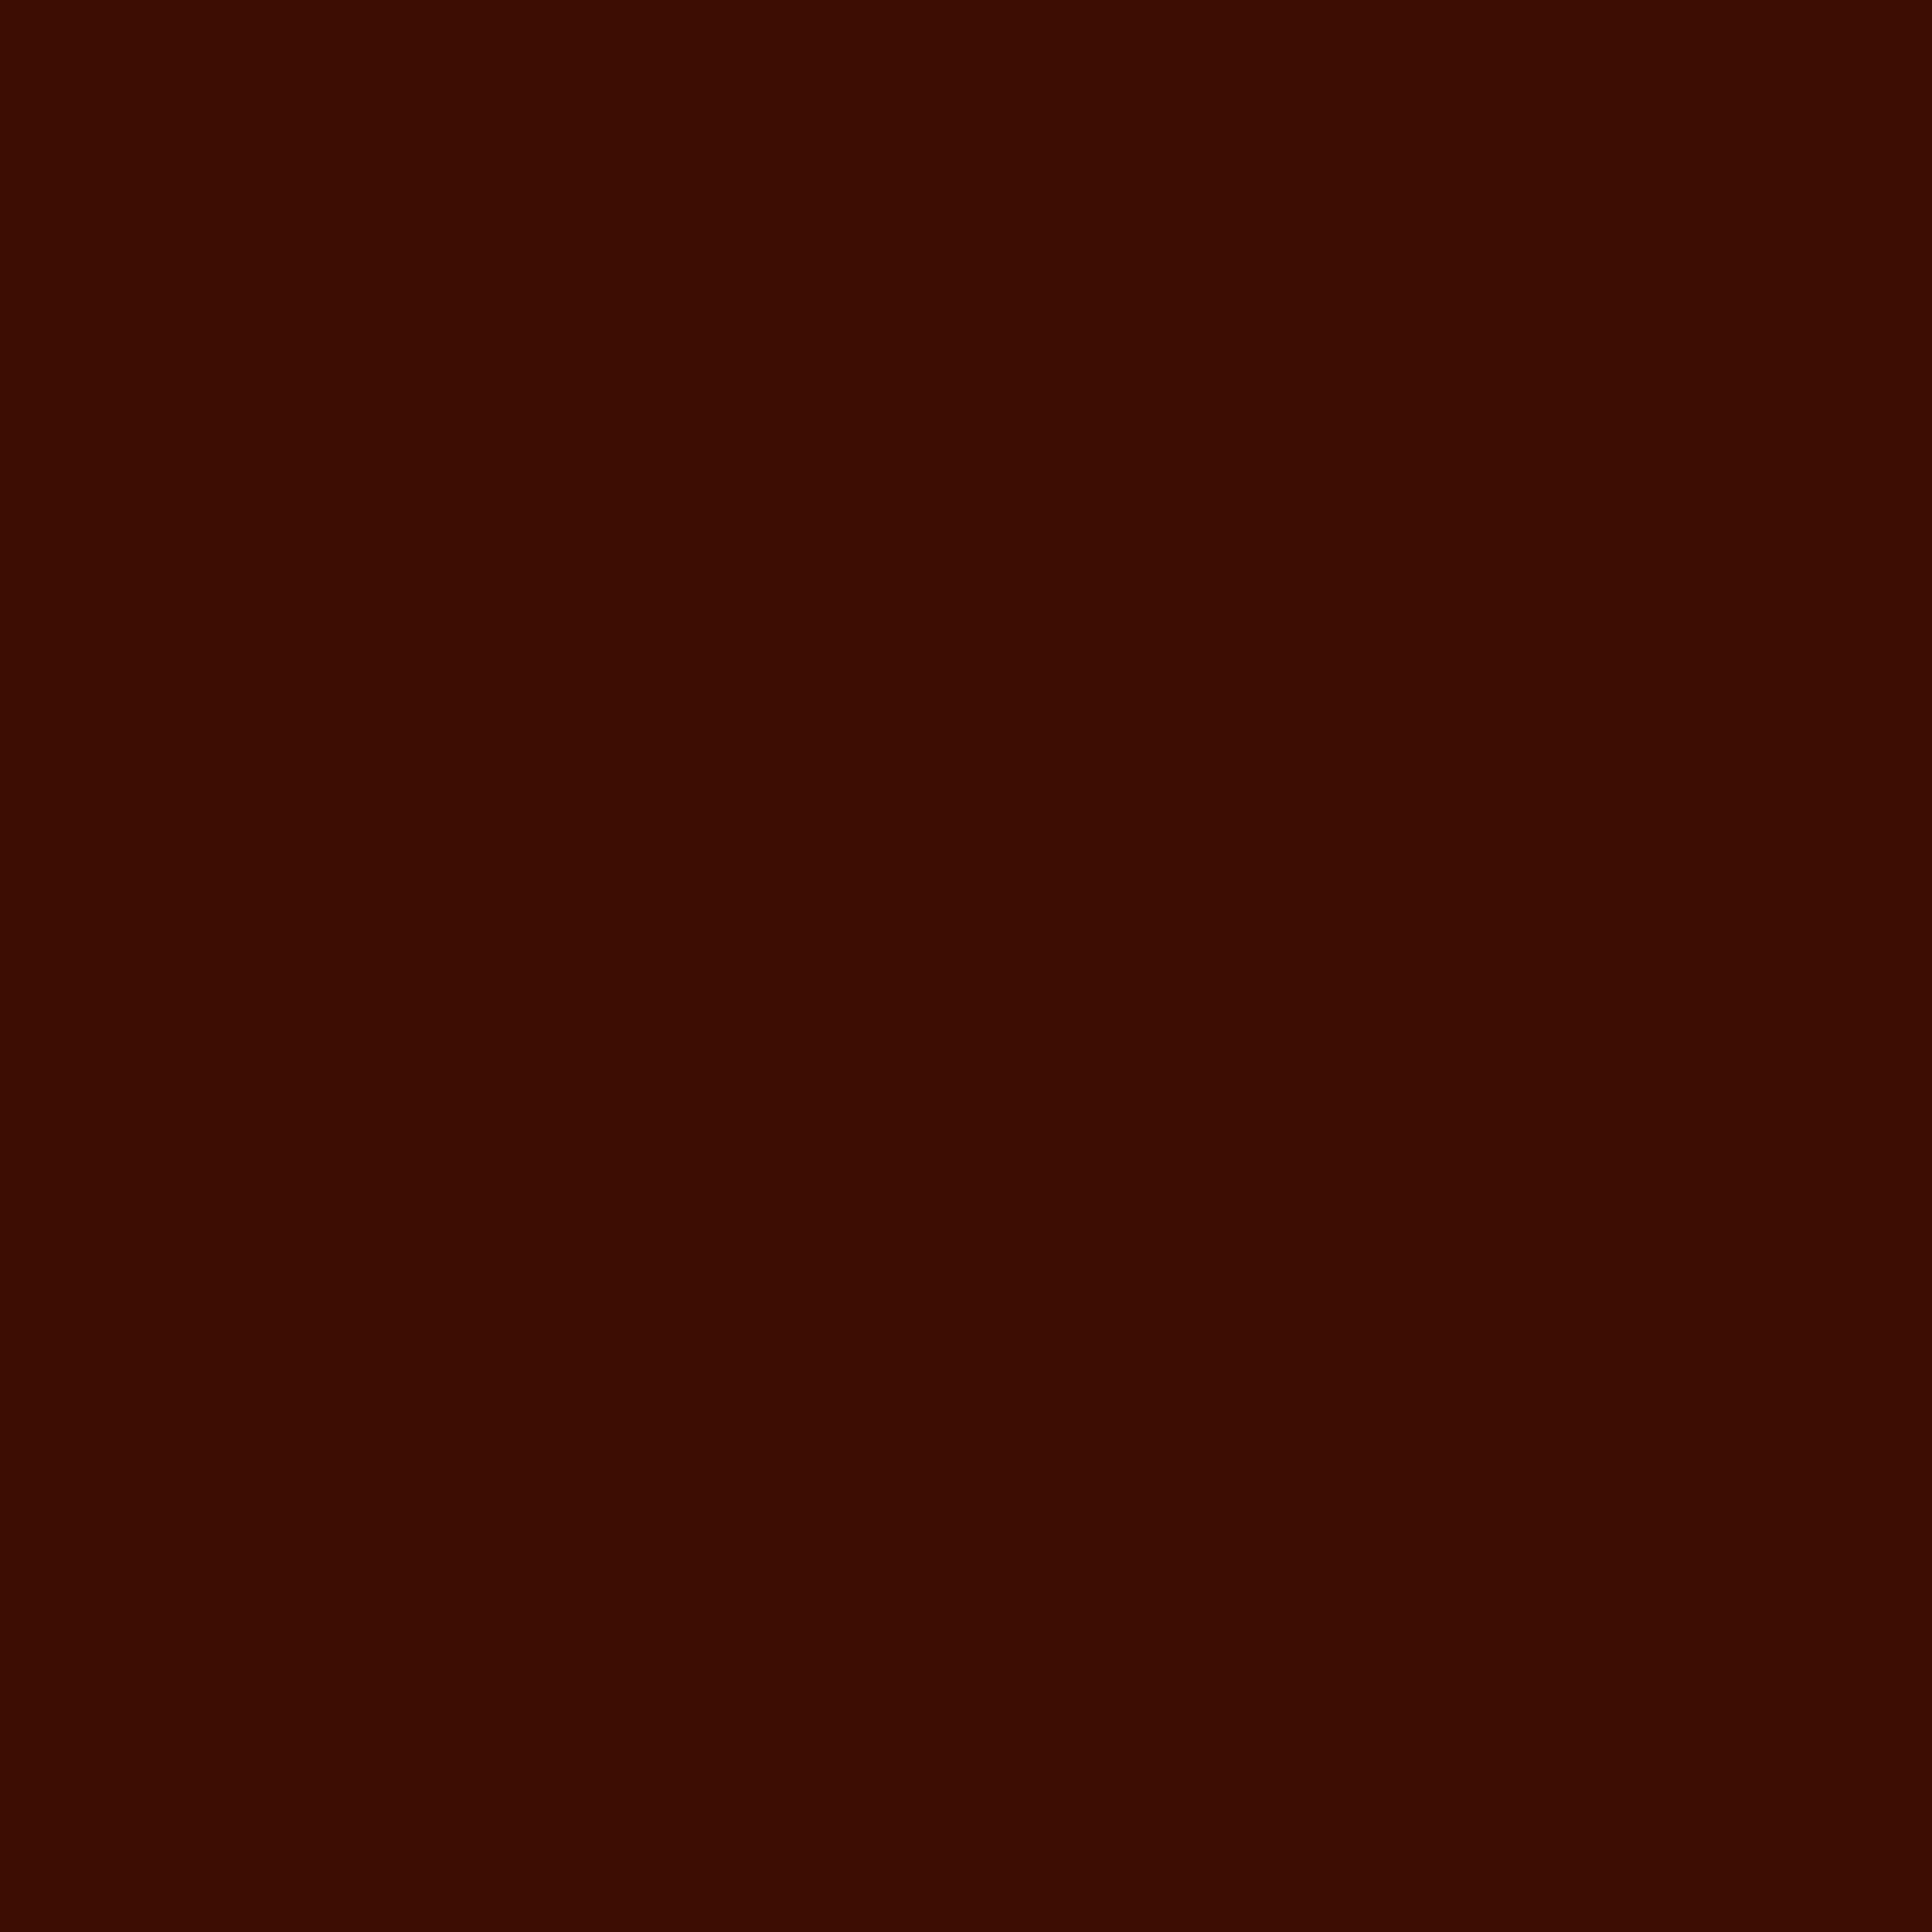 3600x3600 Black Bean Solid Color Background